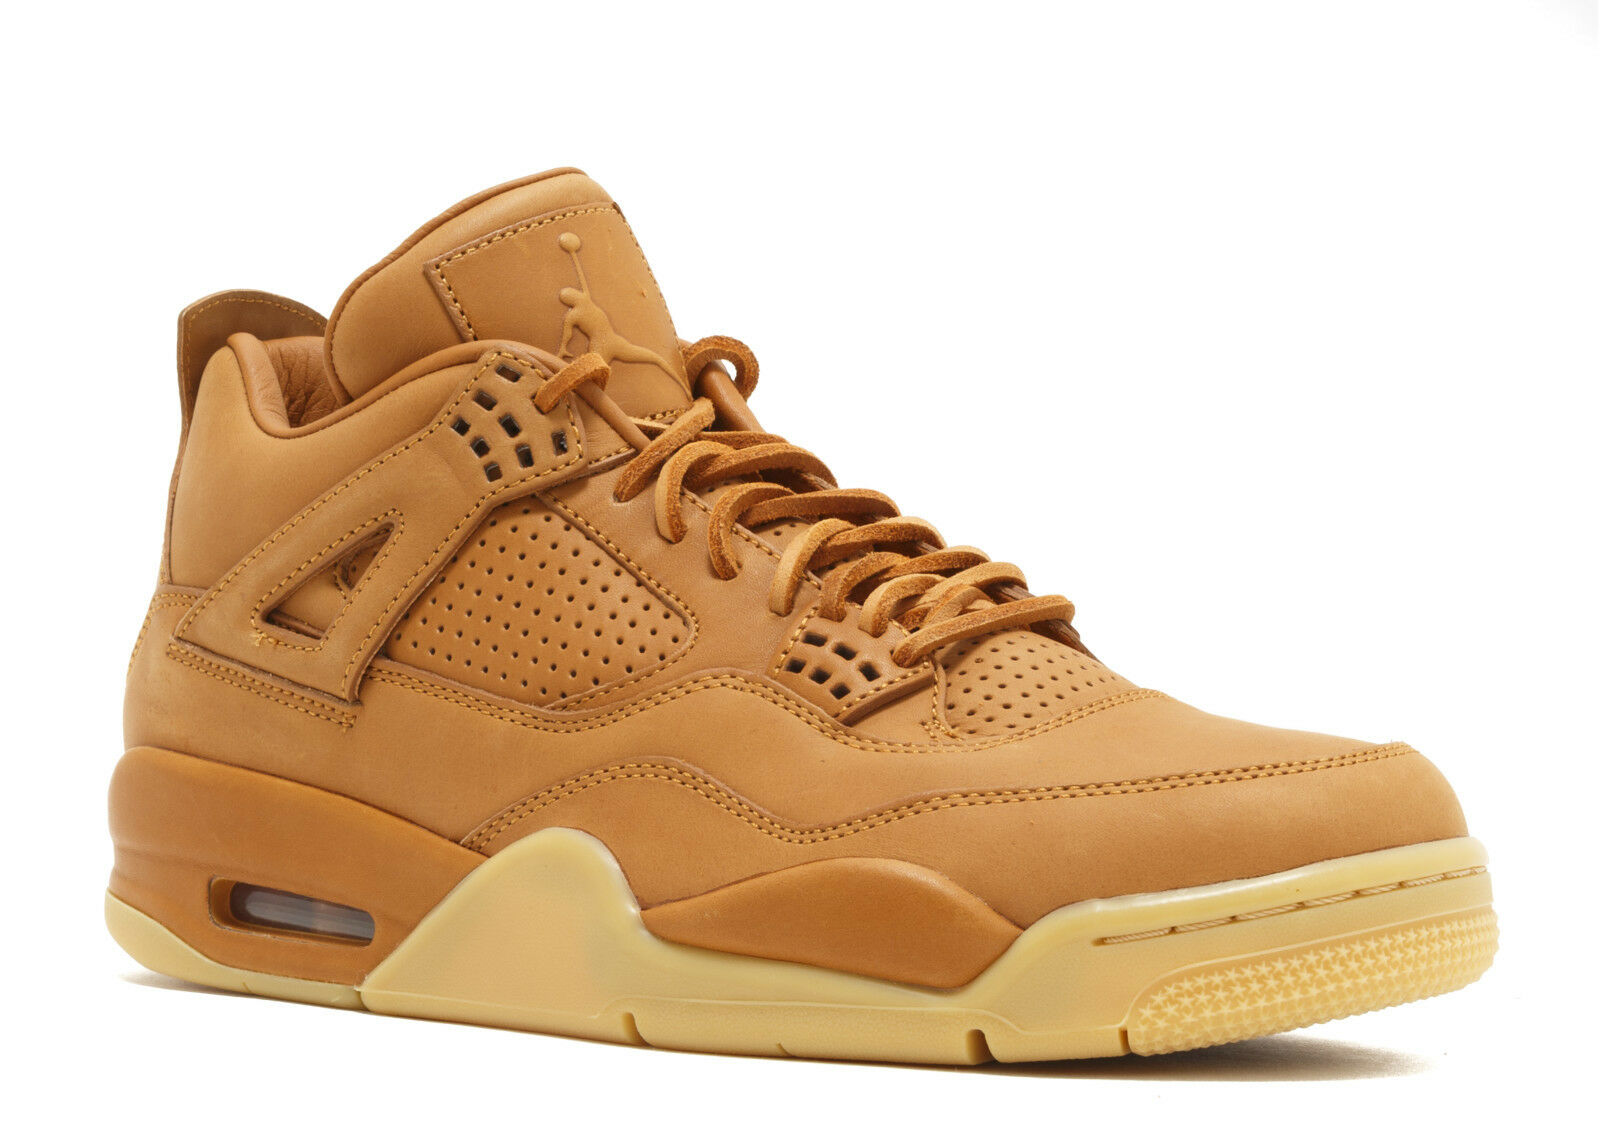 Air Jordan 4 Retro Premium 'Pinnacle Wheat' - 819139-205 - Size 9